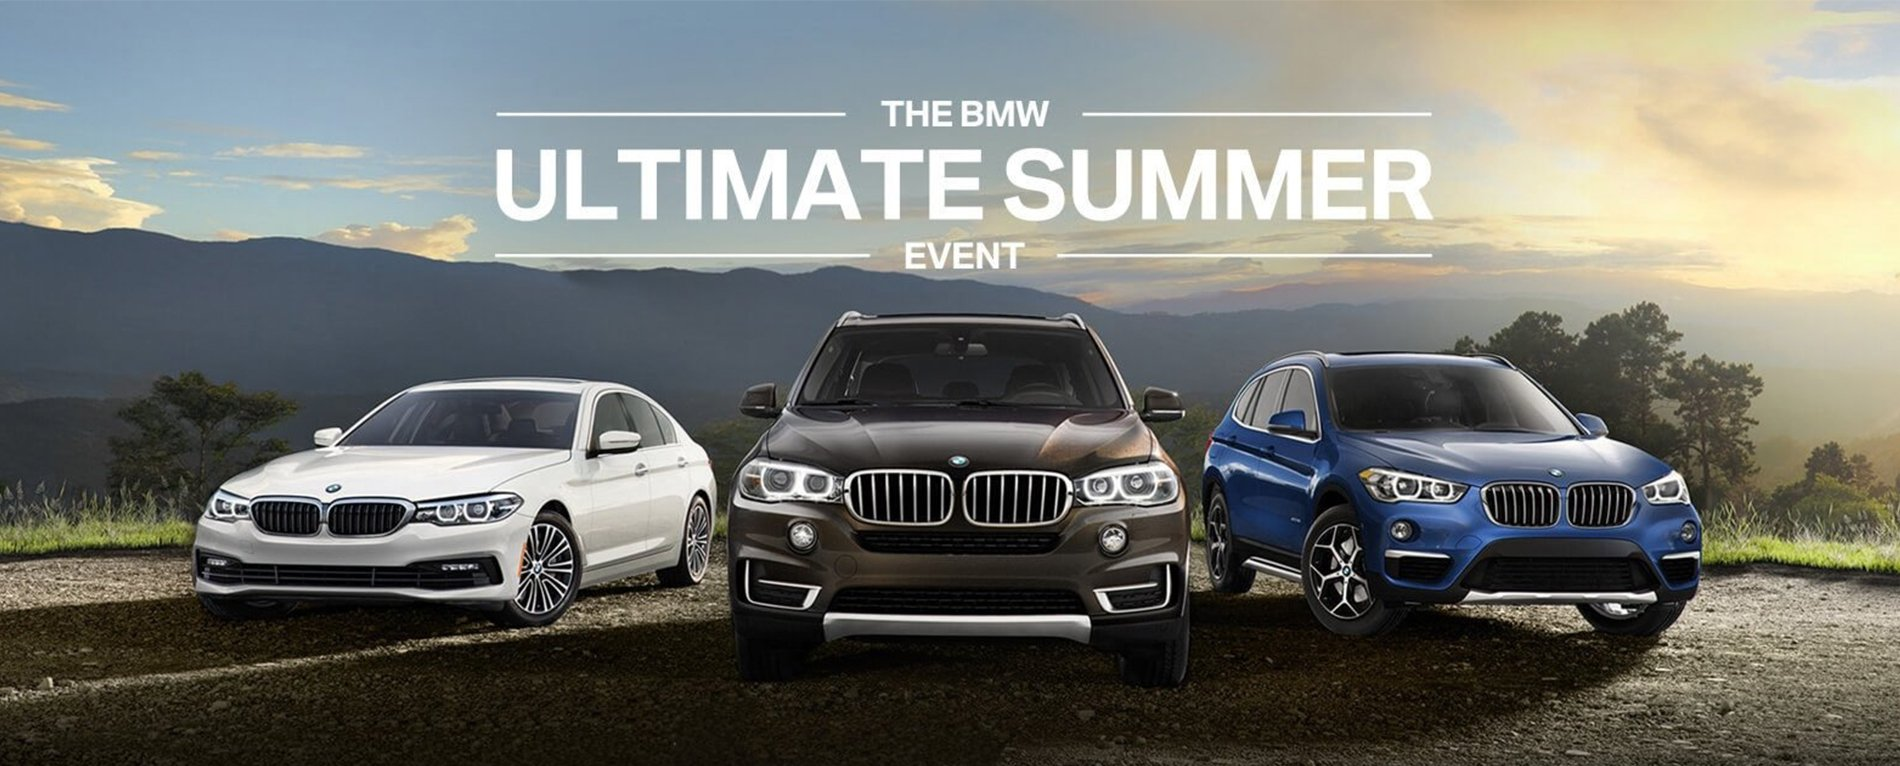 Reeves_BMW_0001_Ultimate_Summer_Banner